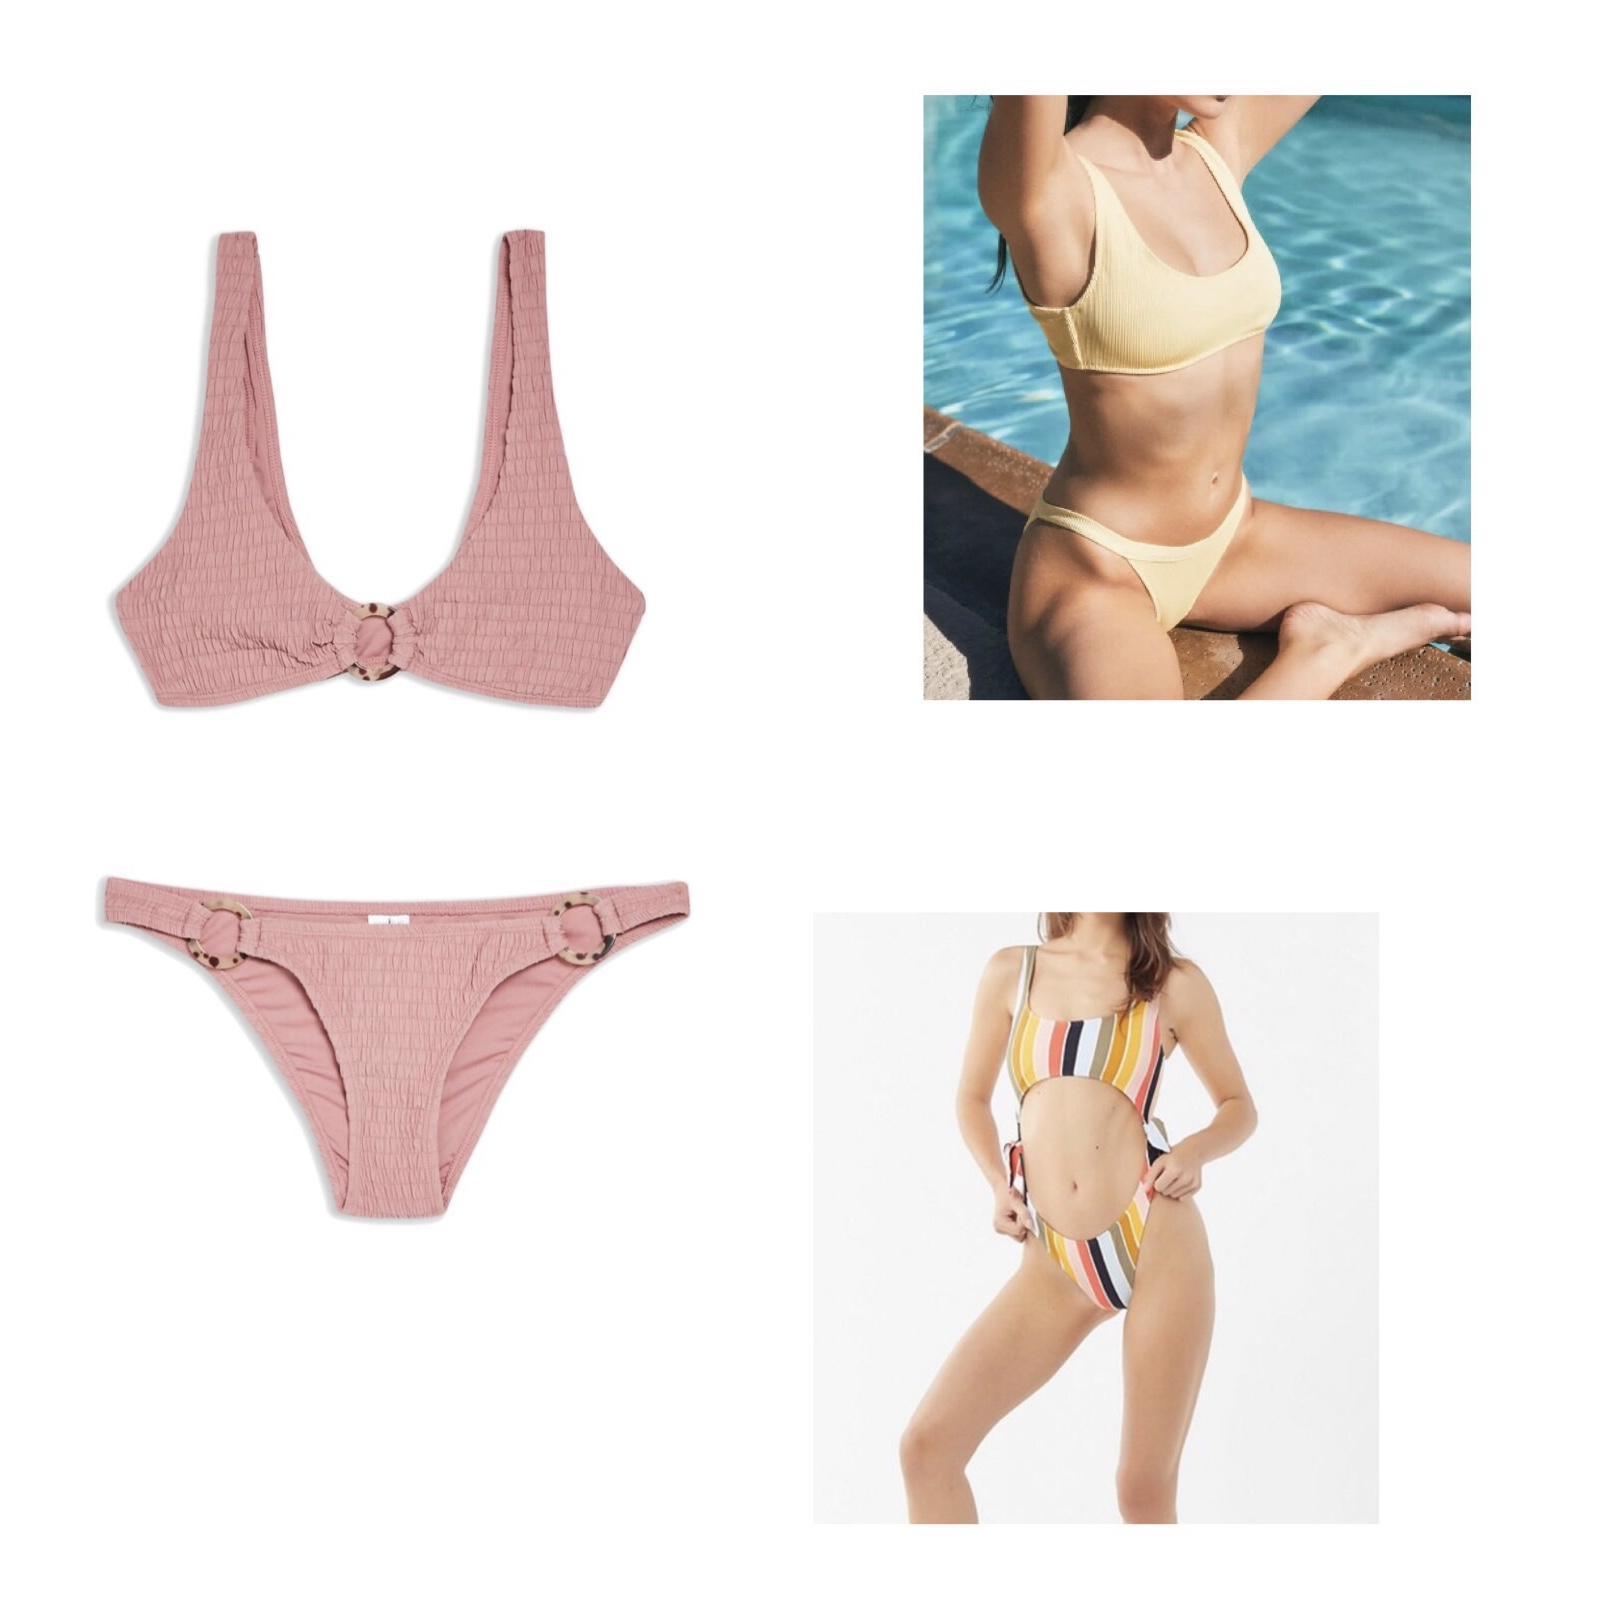 (Clockwise)  1.  Topshop Tortoiseshell Ring Smocked Bikini  - $62  2.  LA Hearts Bondi Ribbed Bikini  - $50  3.  Billabong Retro Striped One-Piece  - $100